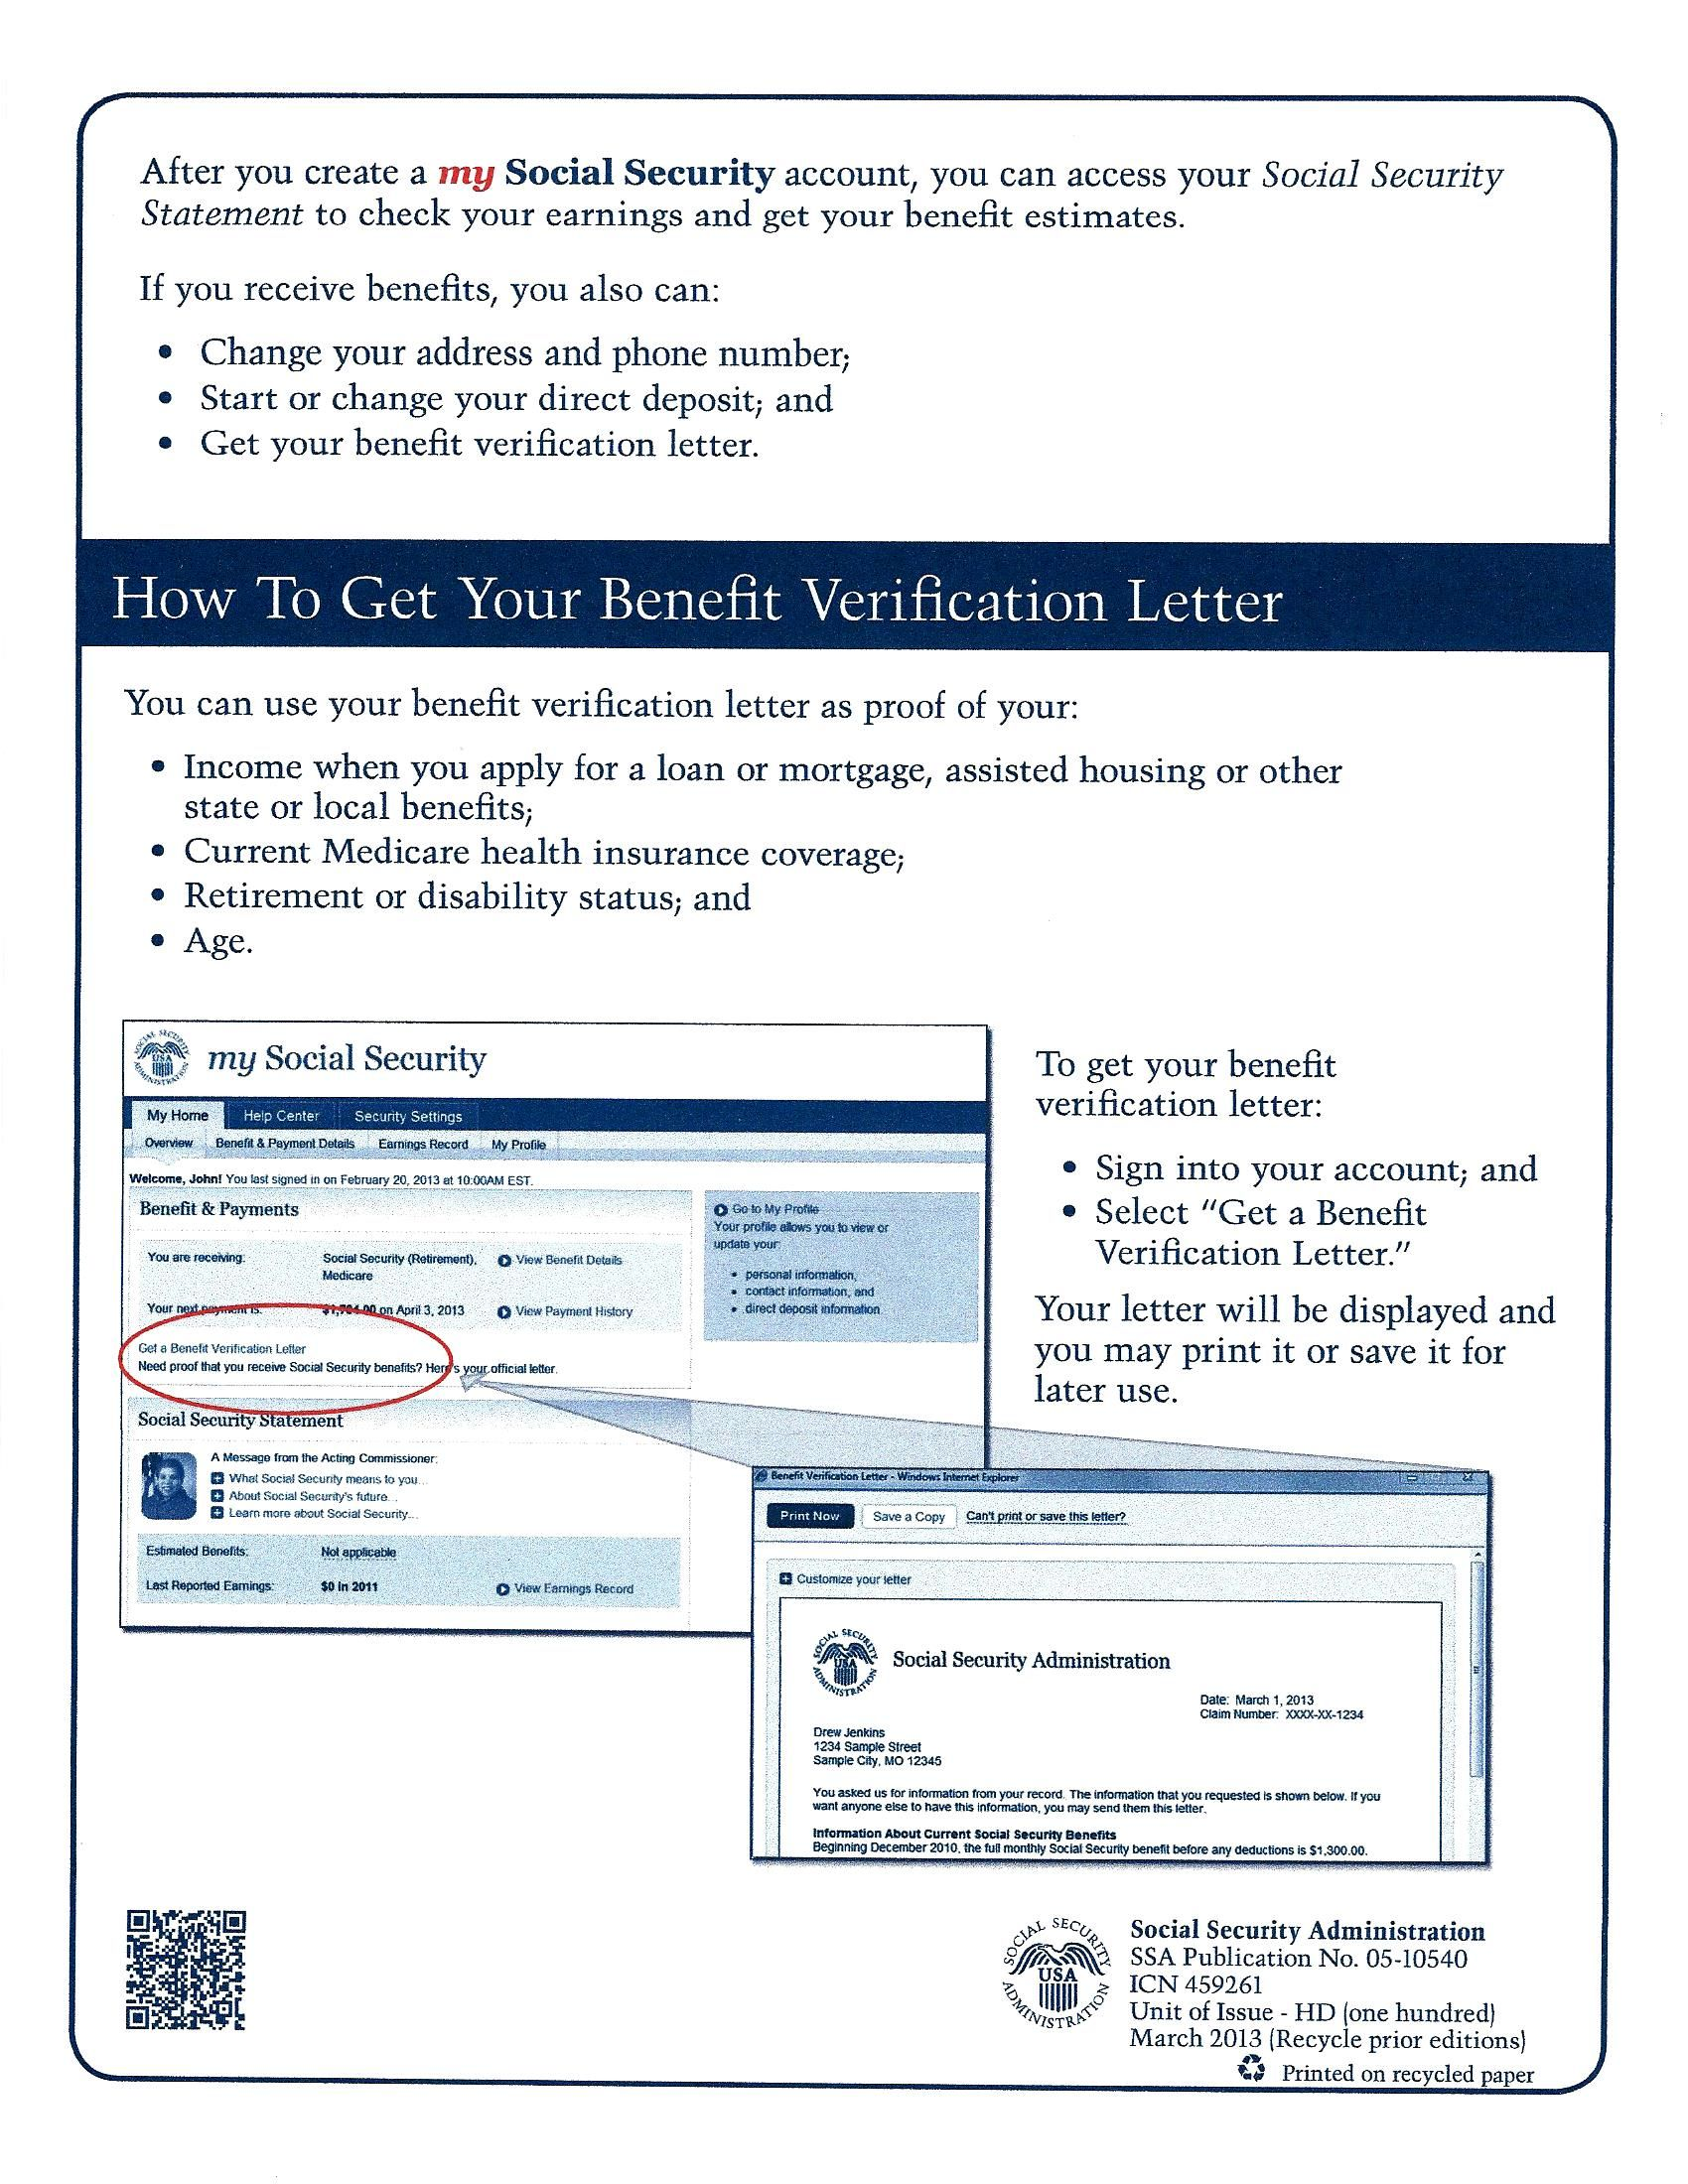 social security administration how to create an online account